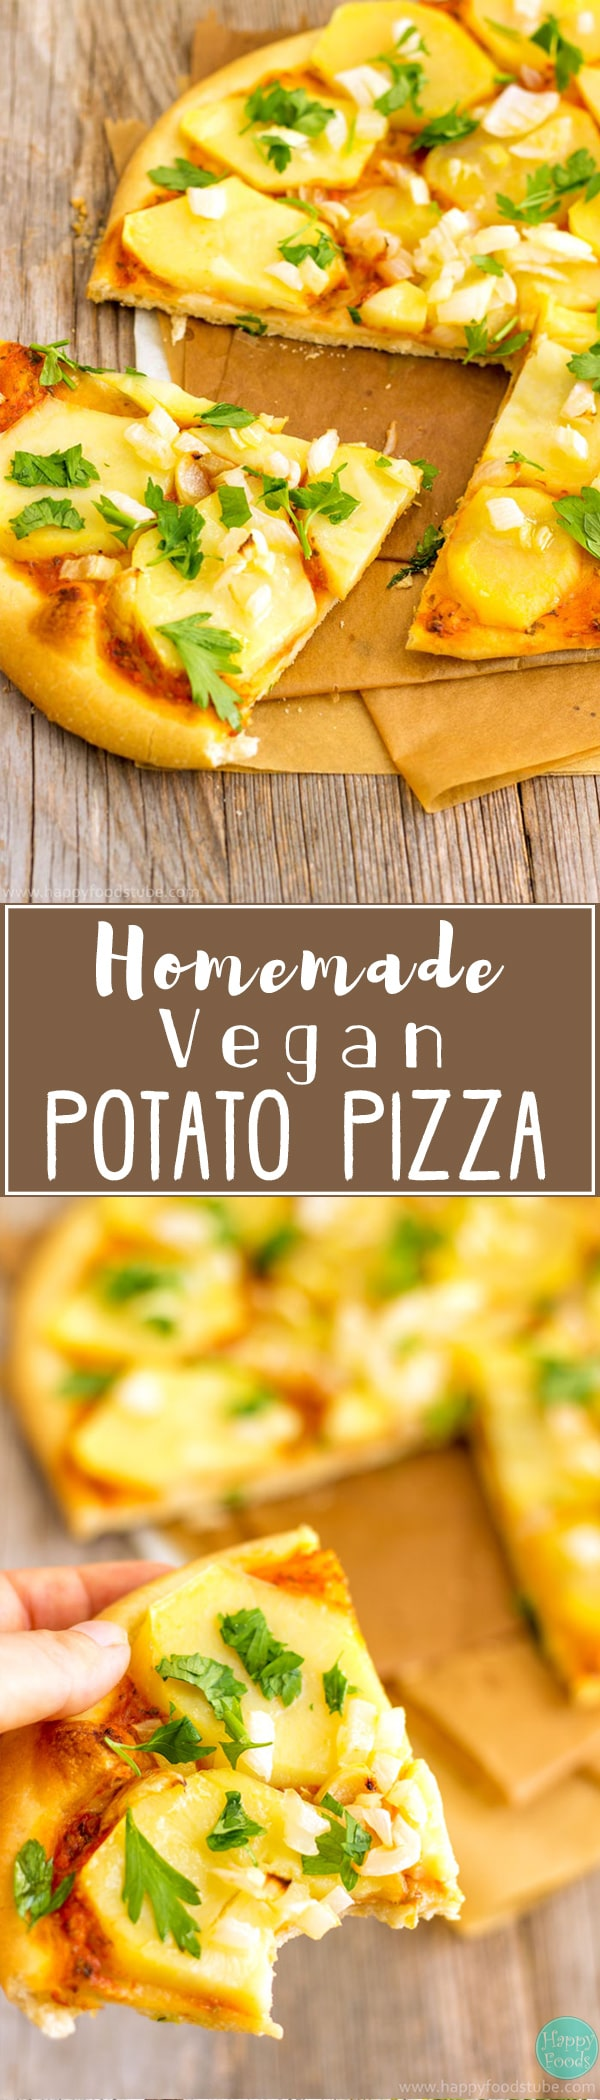 This Homemade Vegan Potato Pizza is loaded with simple yet flavorful ingredients. Delicious & healthier version of the classic cheesy pizza